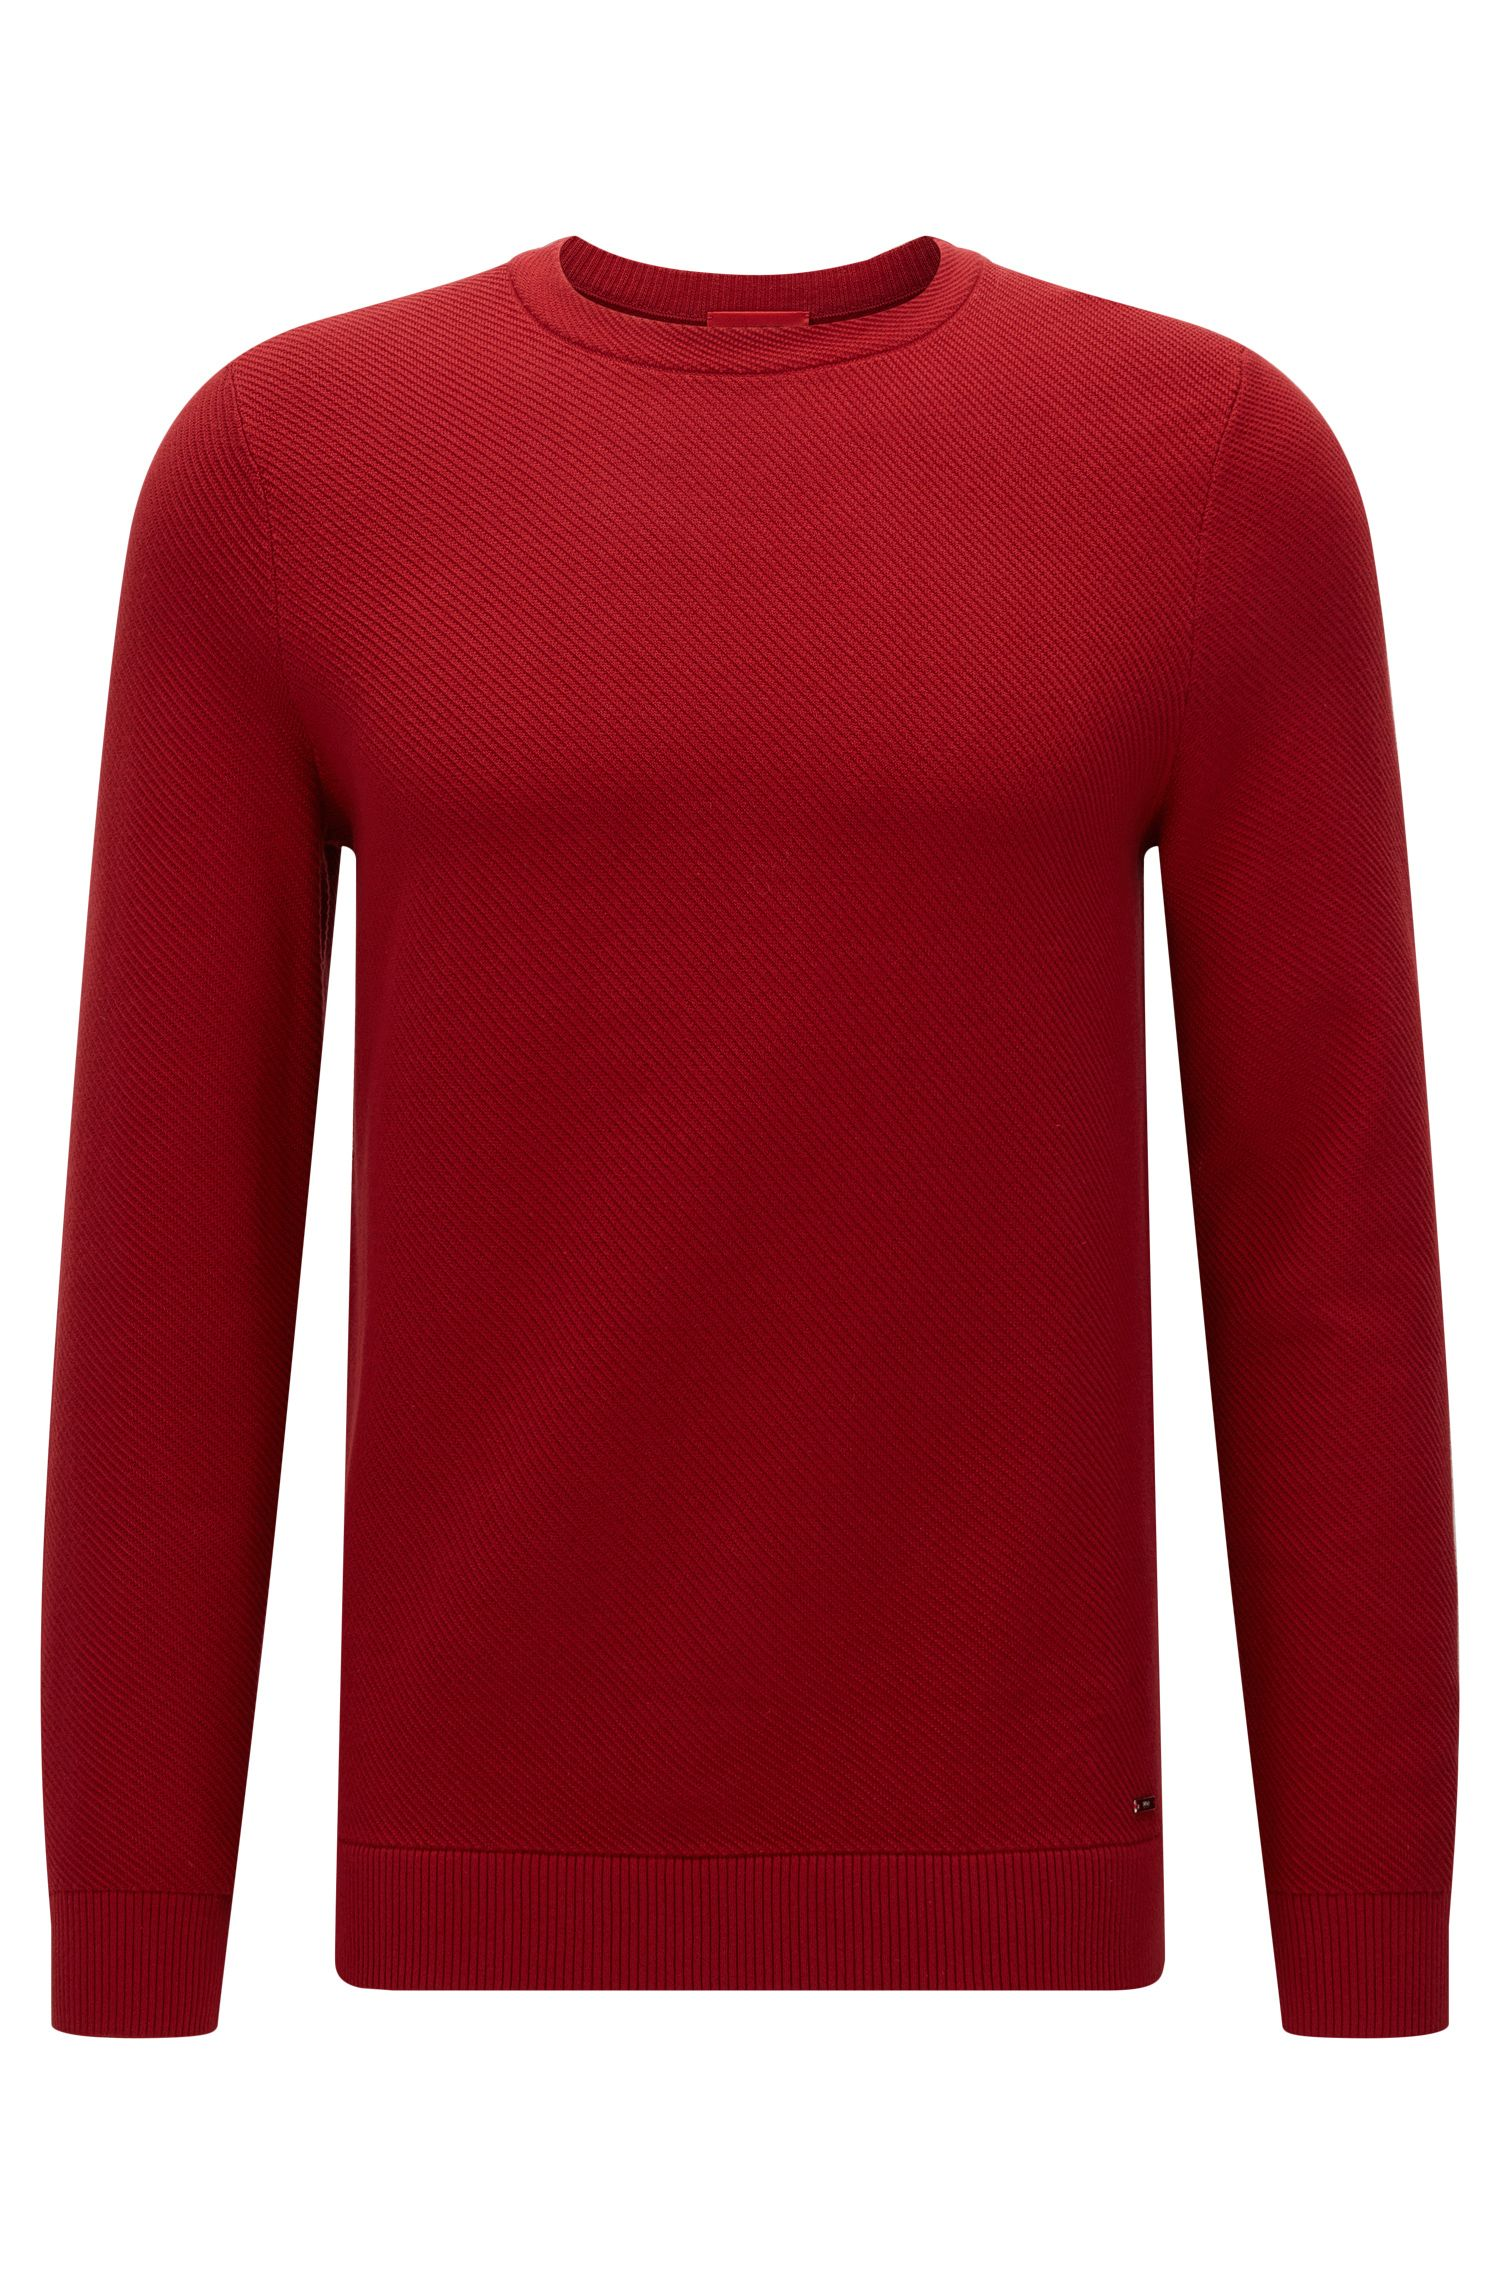 Relaxed-fit sweater with diagonal rib texture